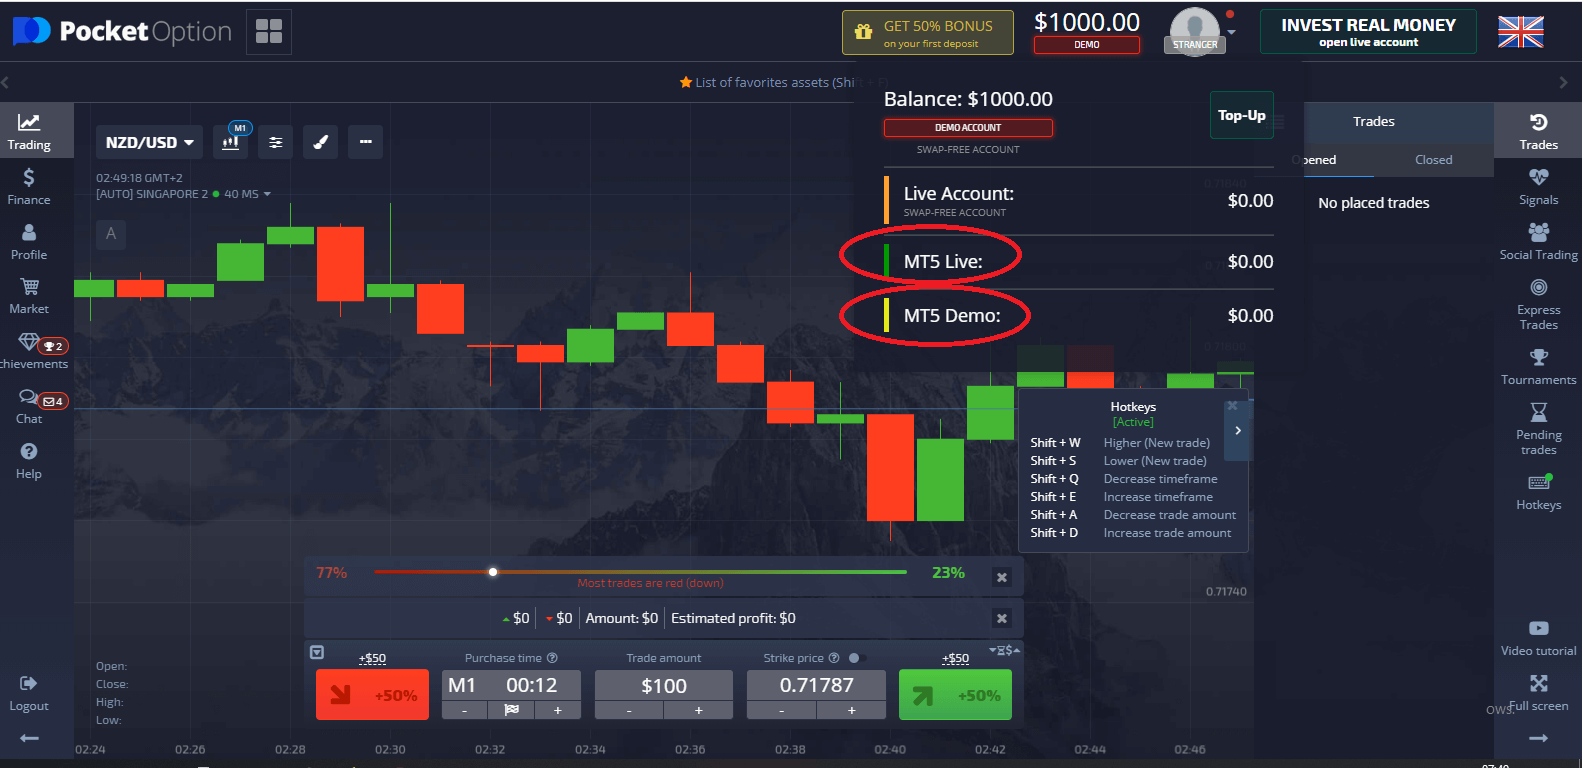 How to Register and Trade Forex at Pocket Option